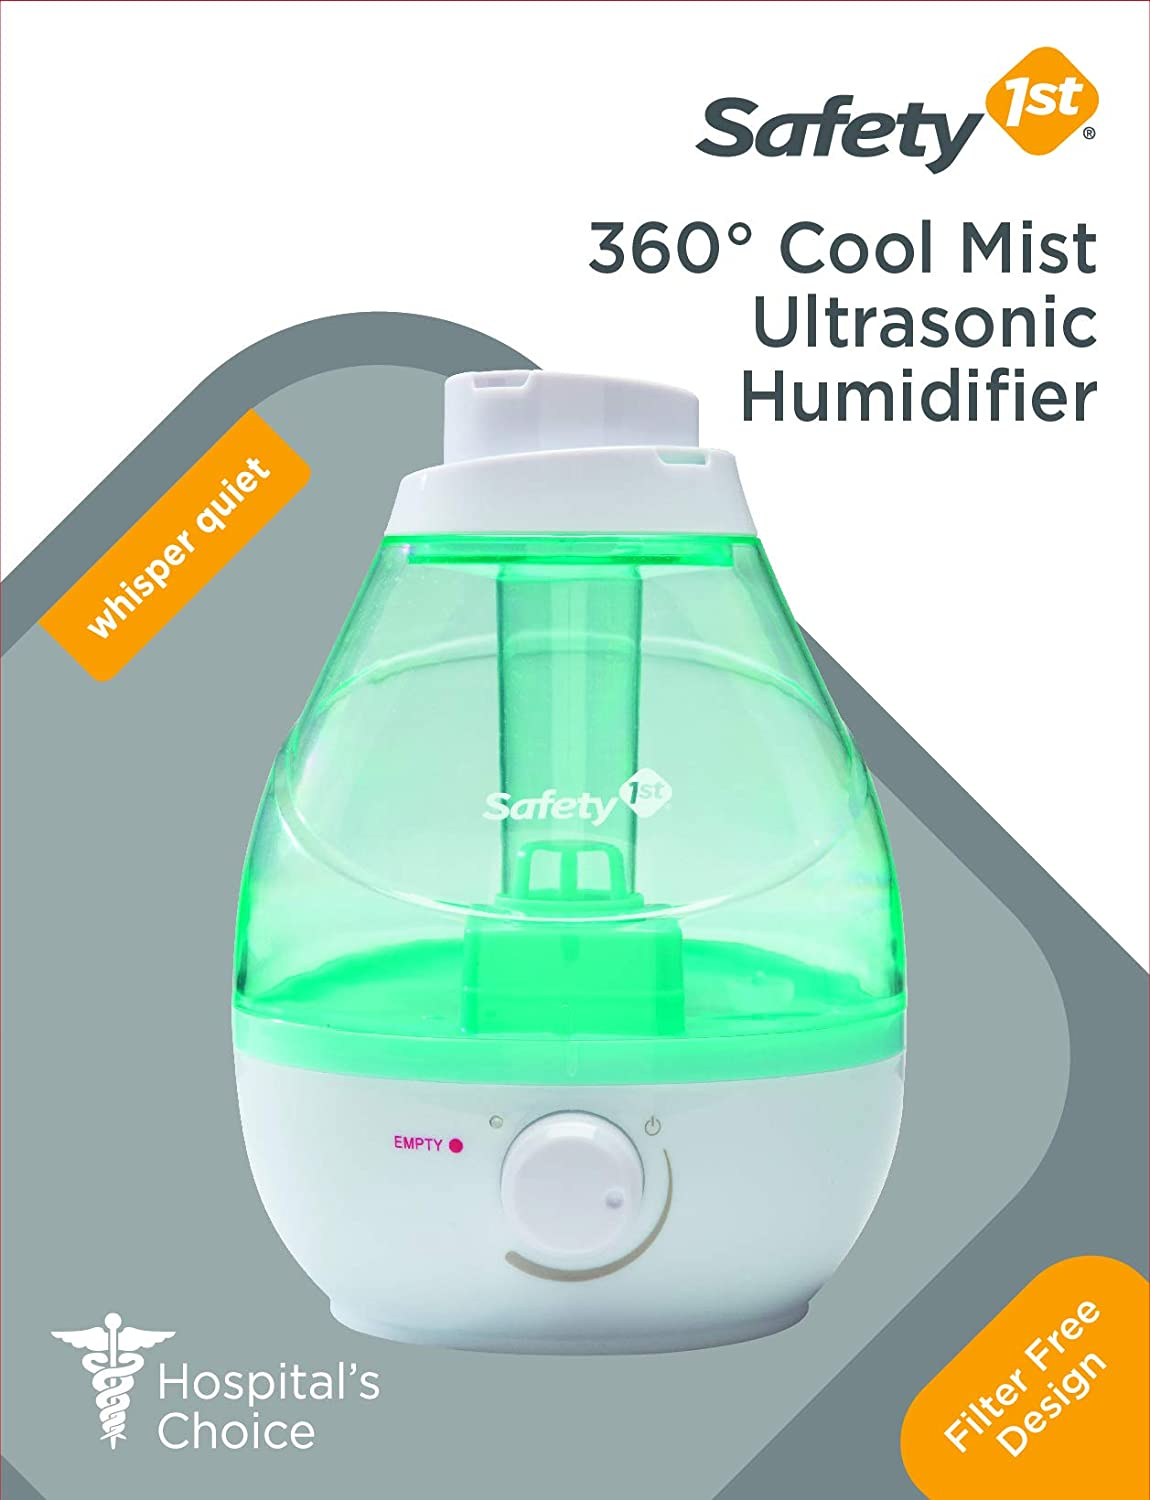 One Size Seafoam Safety 1st 360 Degree Cool Mist Ultrasonic Humidifier